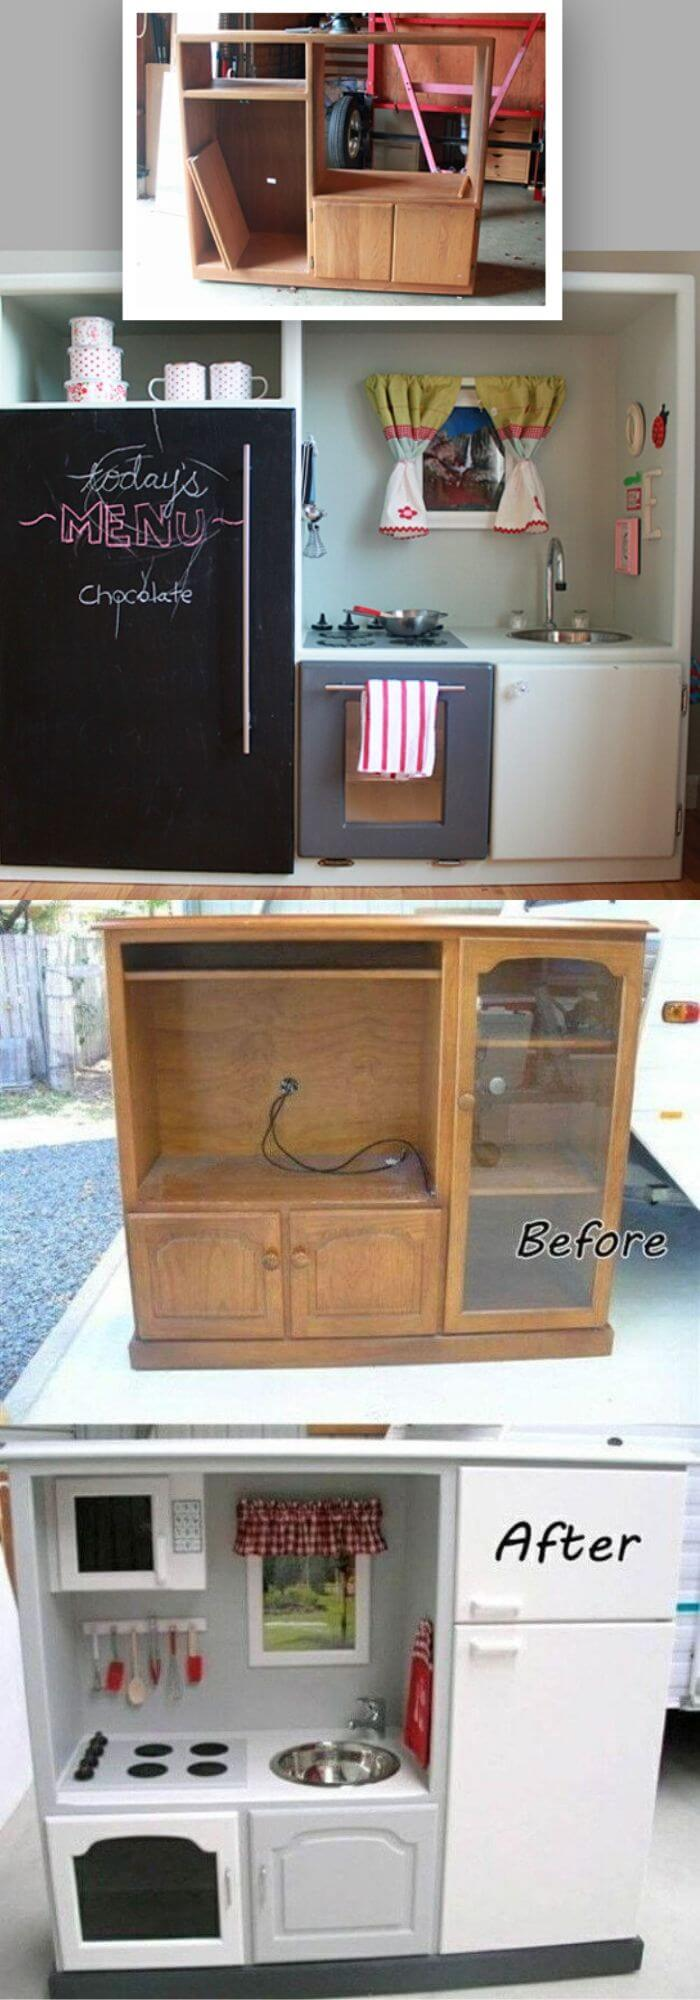 Transform an old entertainment center into a kid's dream play kitchen